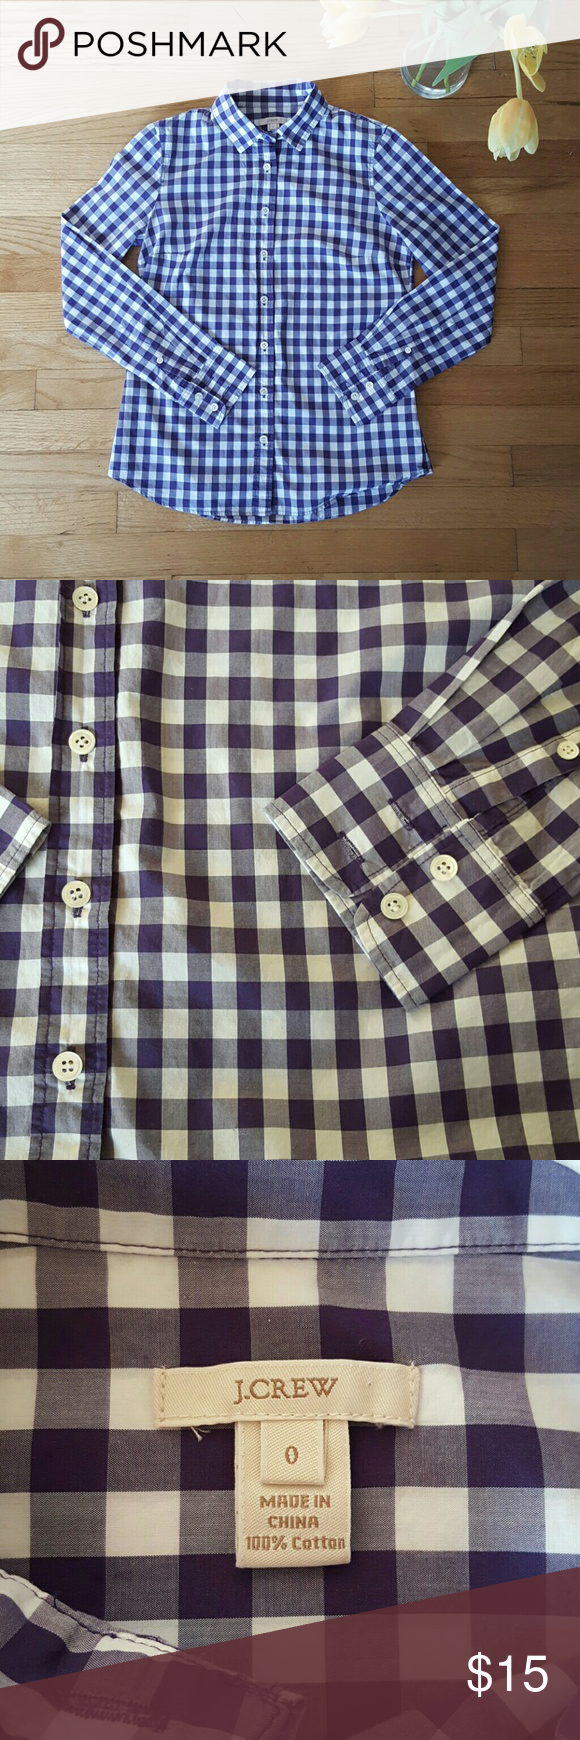 J. Crew Button Down Cute purple J. Crew Button Down. Never worn, in perfect condition. 100% cotton. J. Crew Tops Button Down Shirts